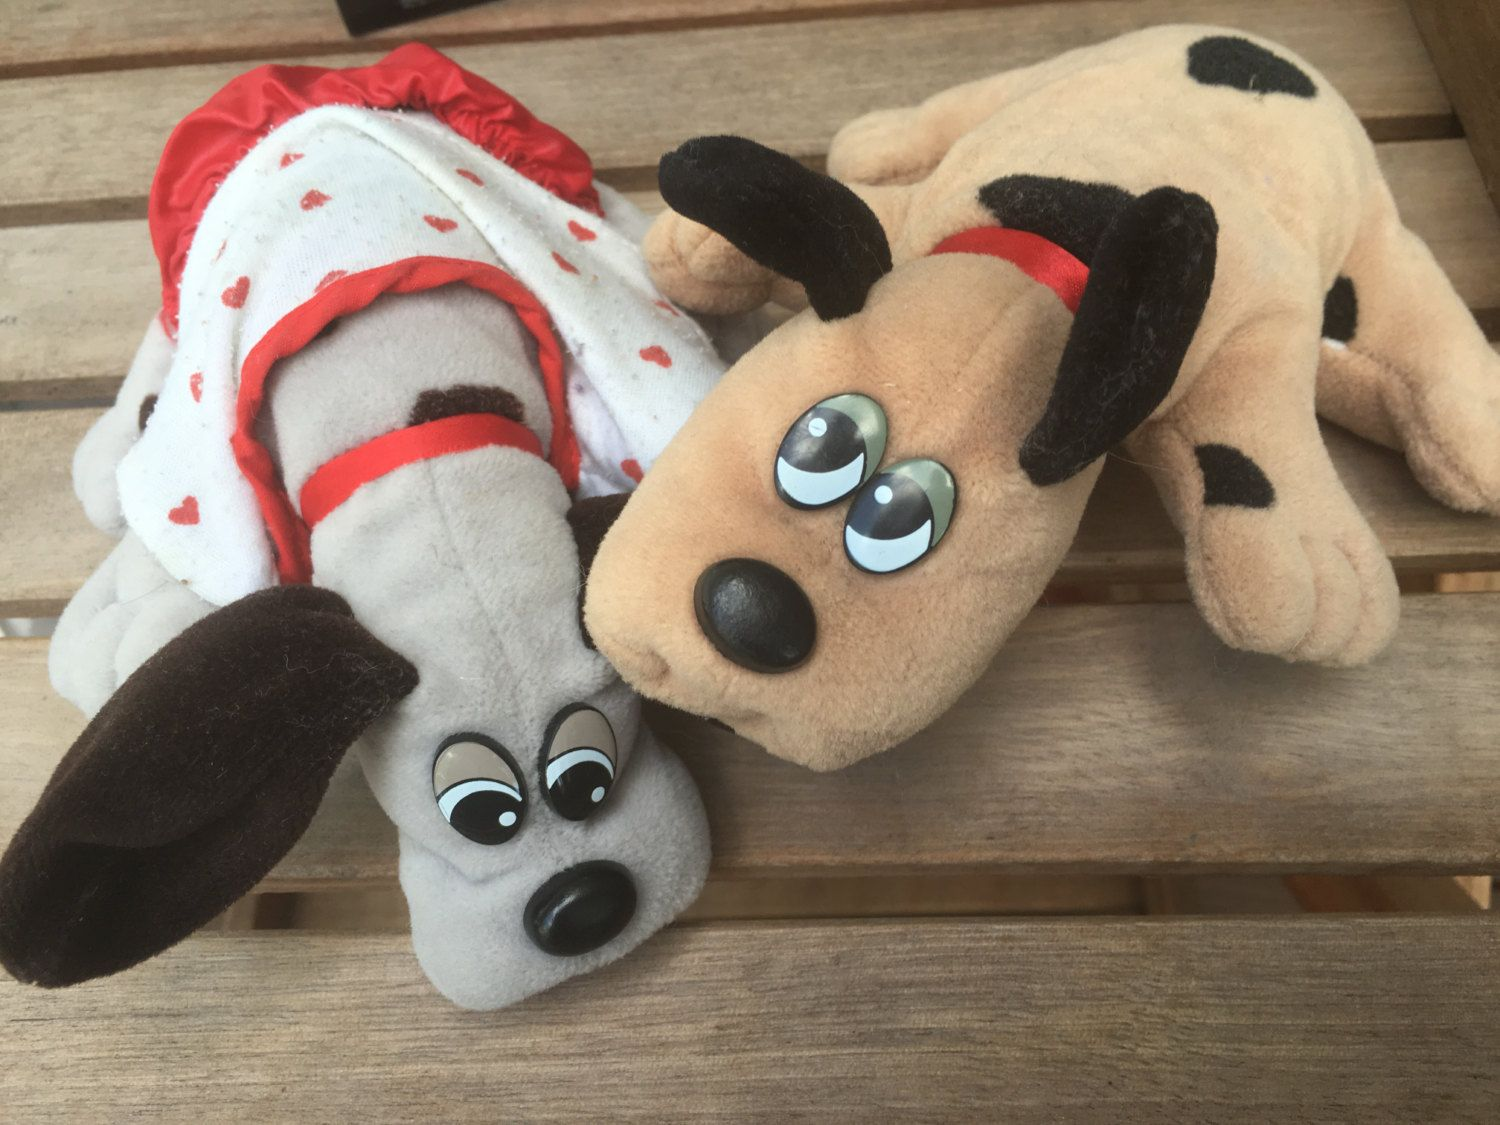 Vintage Pound Puppies Tan and grey Plush 1980s by HollyWouldFind